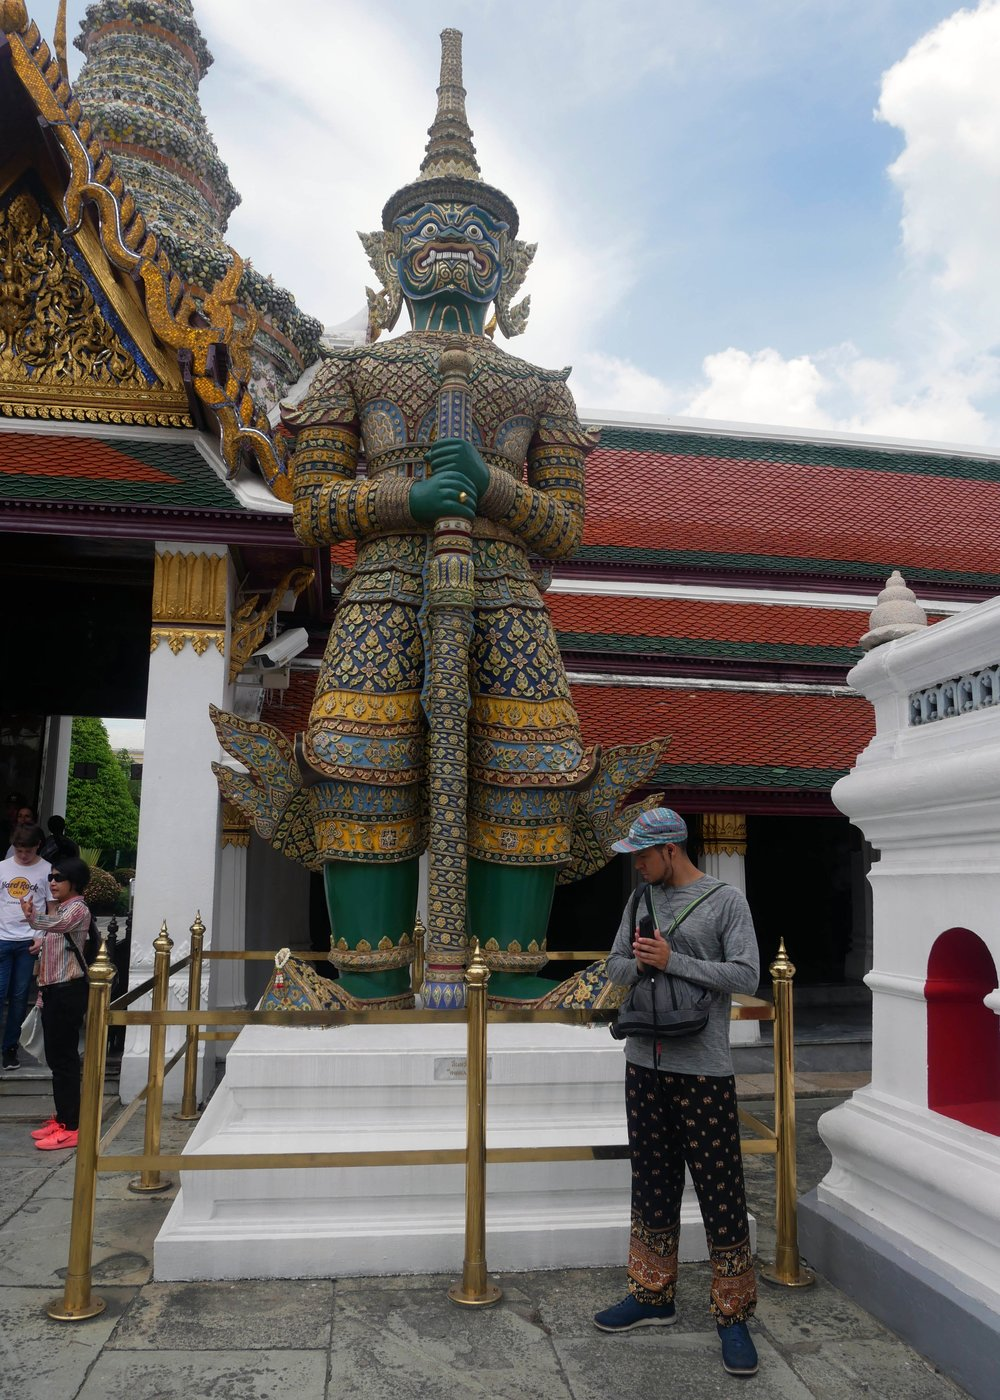 Protectors of the Grand Palace